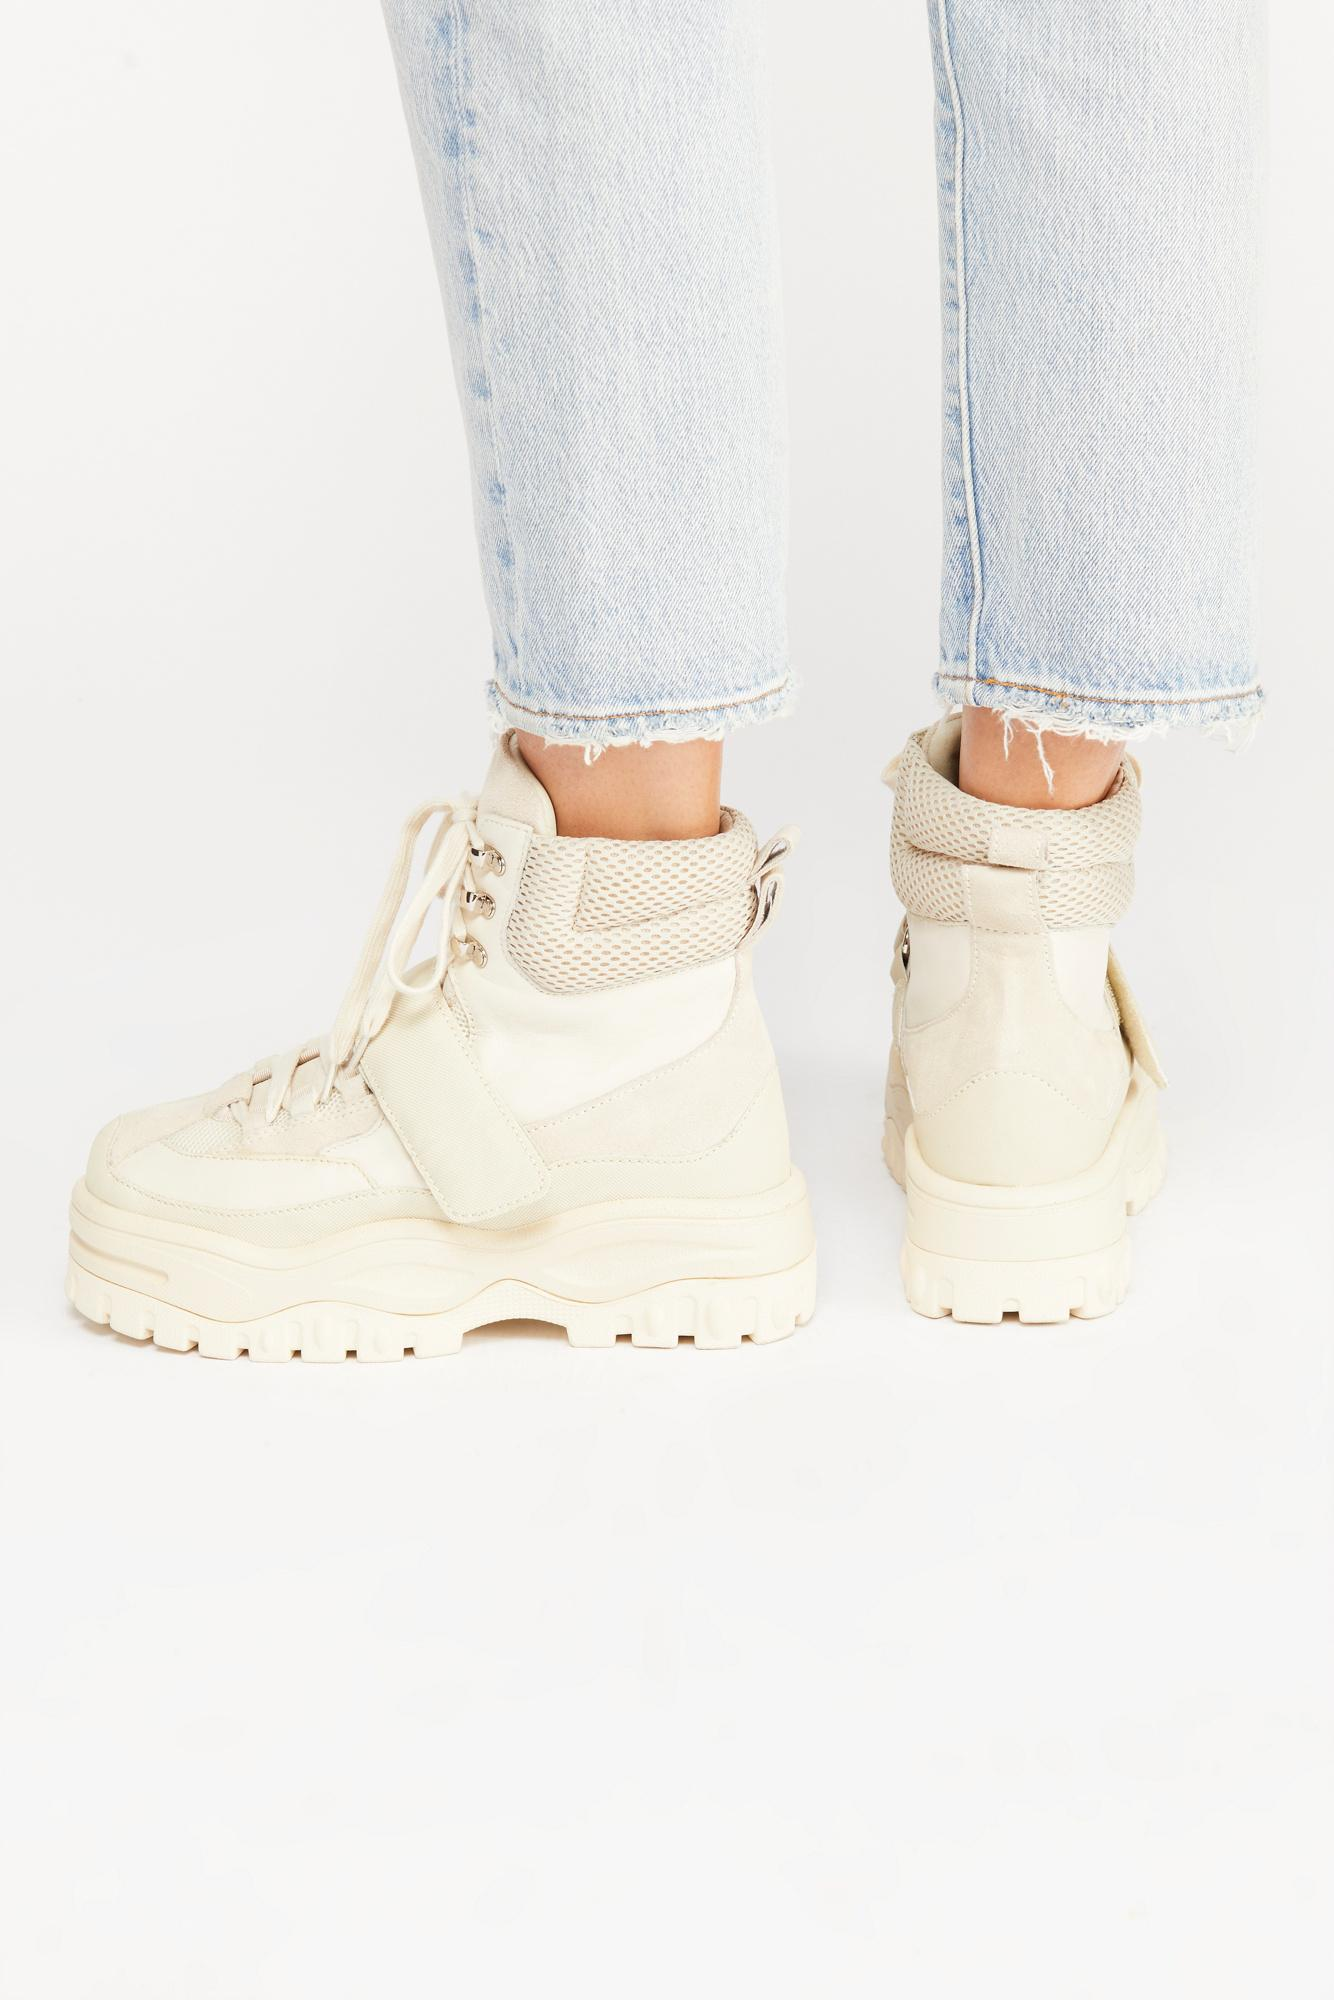 30d8ab7dd03d Lyst - Free People Sugar And Spice Hi Top Sneaker By Jeffrey ...